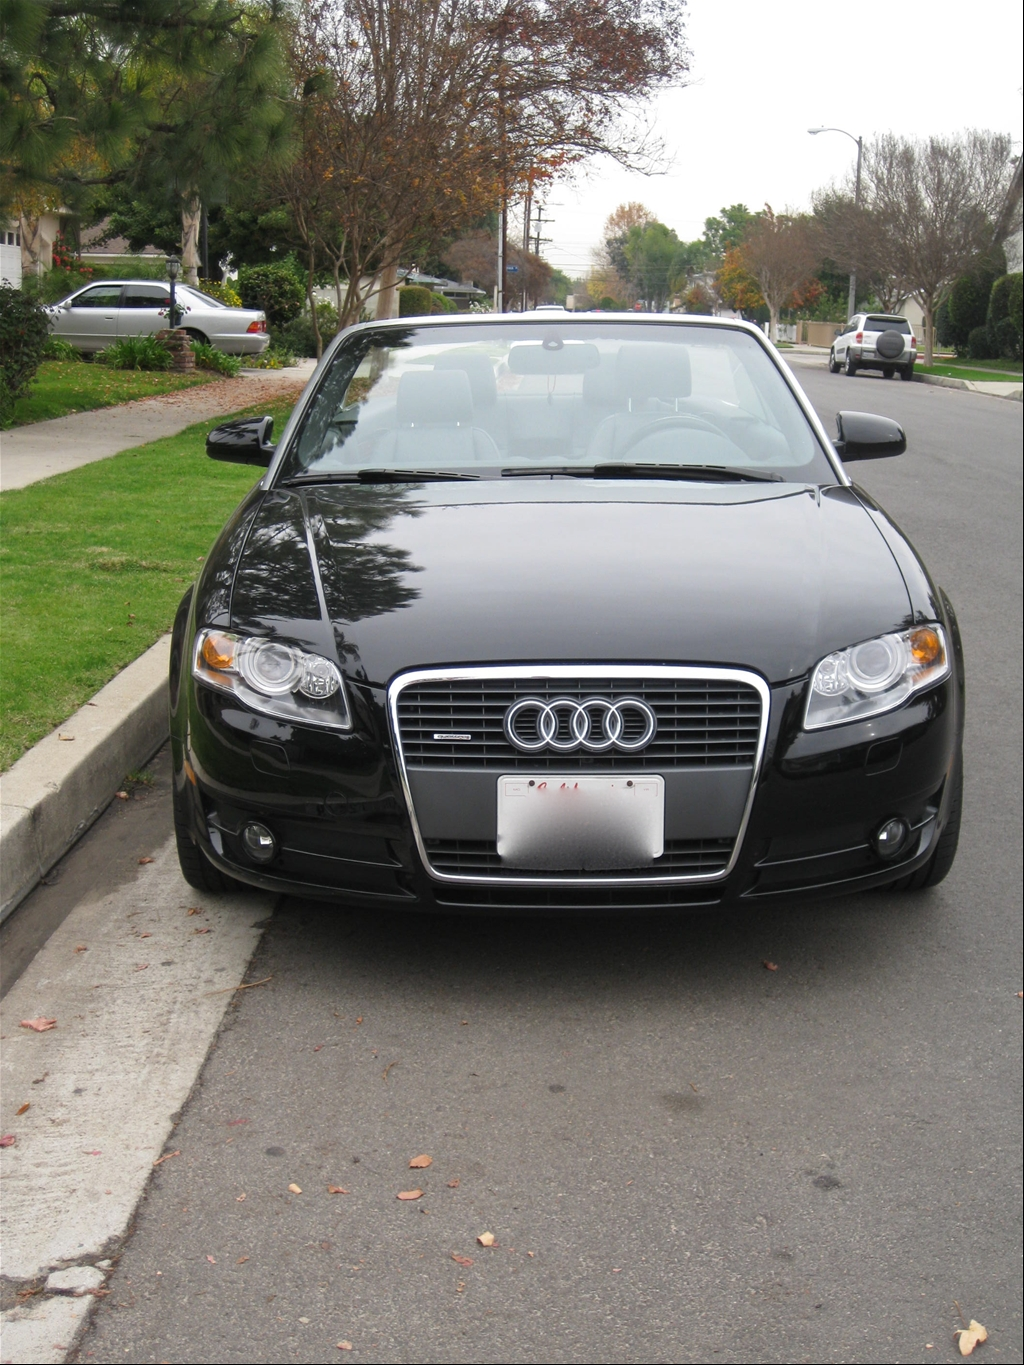 zgabay 39 s 2007 audi a4 in valley village ca. Black Bedroom Furniture Sets. Home Design Ideas